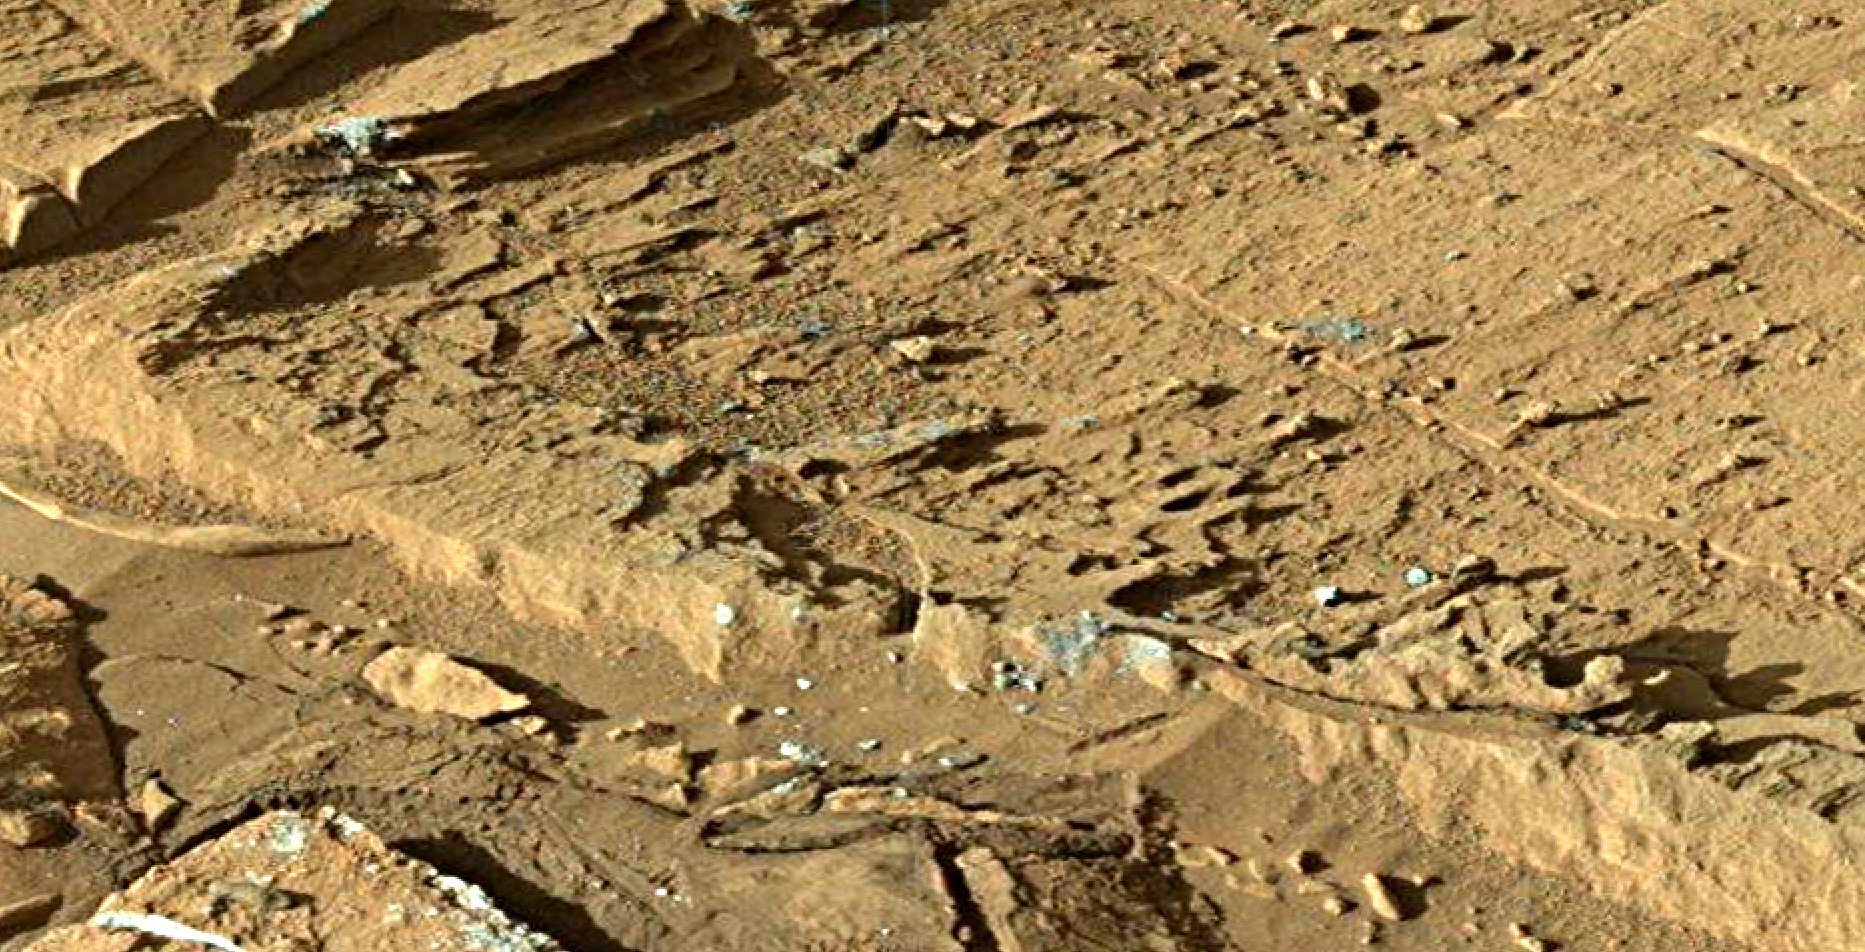 mars sol 1302 anomaly-artifacts 8 was life on mars